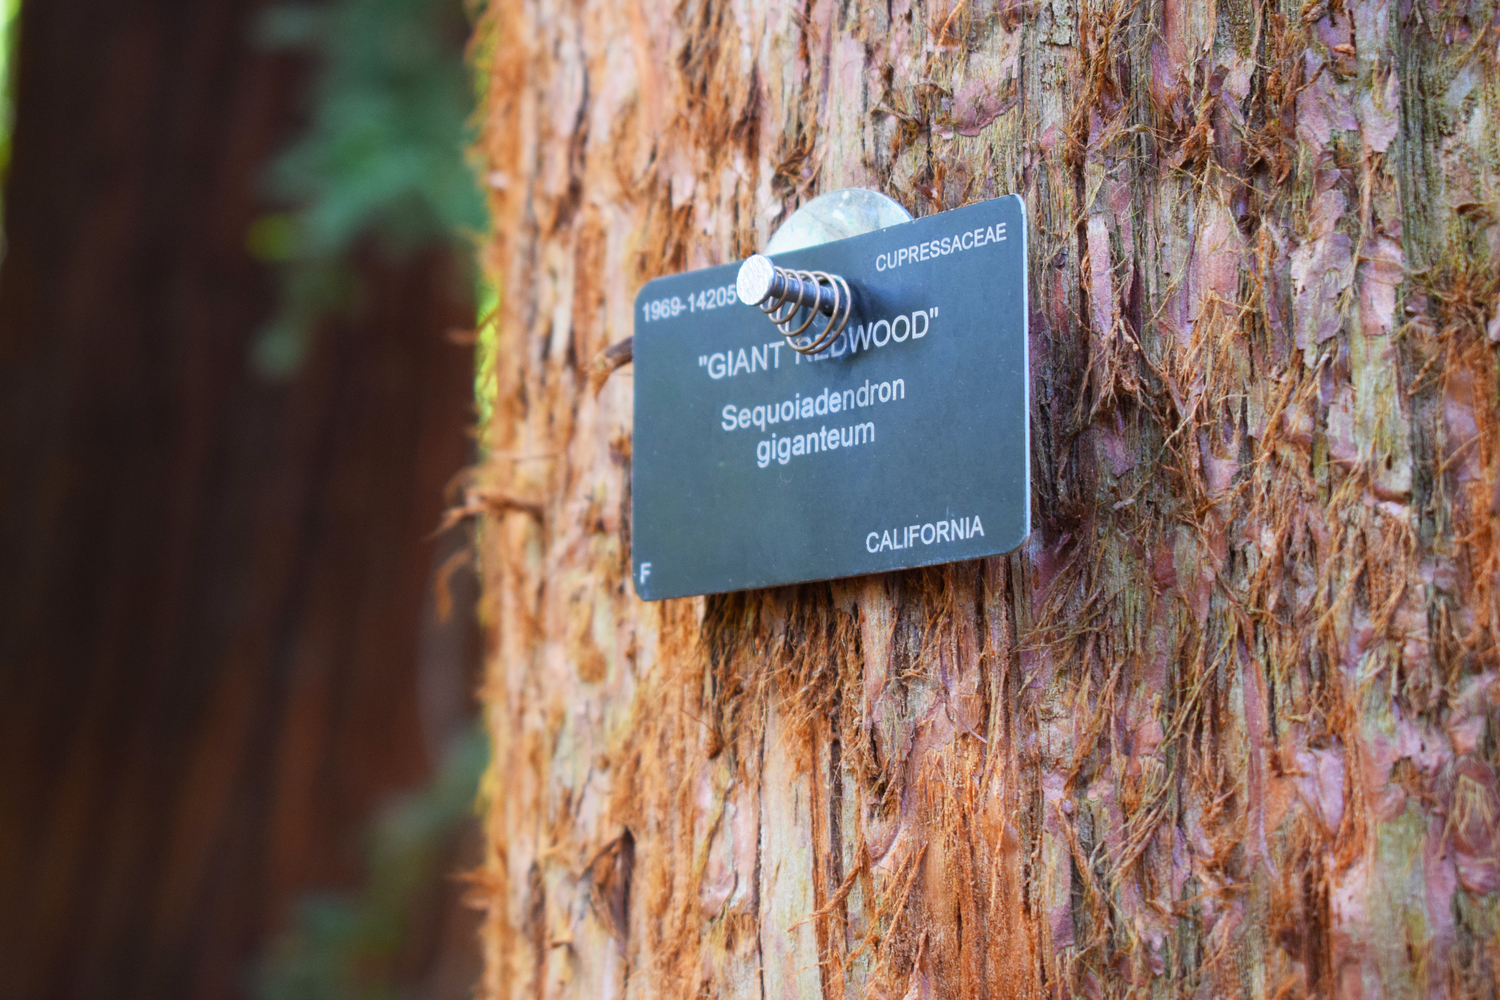 A redwood trunk with a sign reading 'giant redwood'